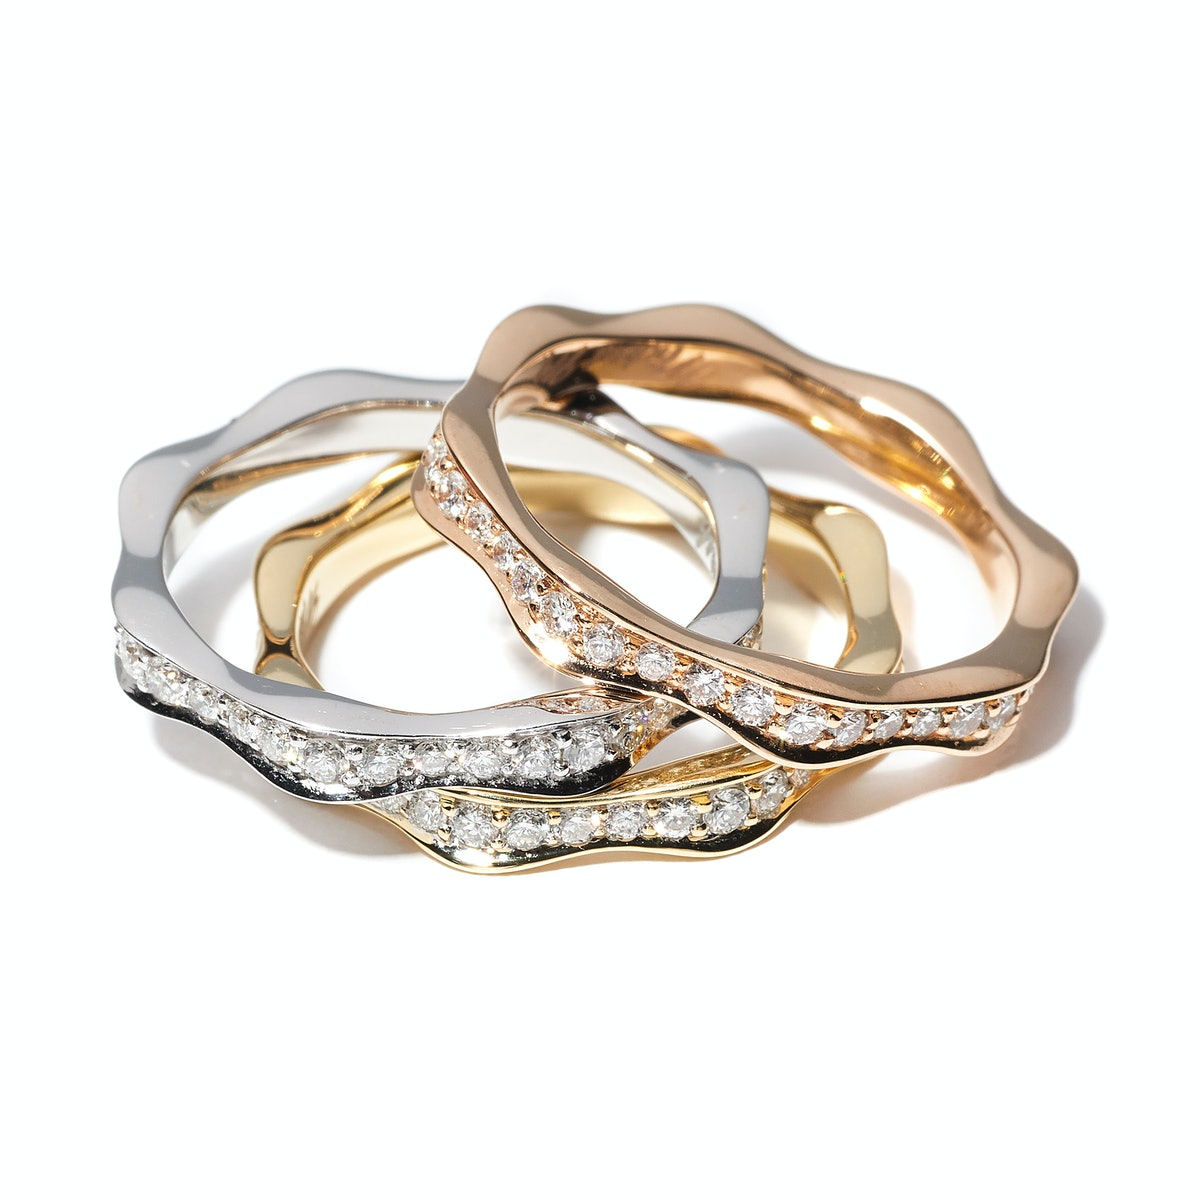 Michael M. Collection gold and diamond rings